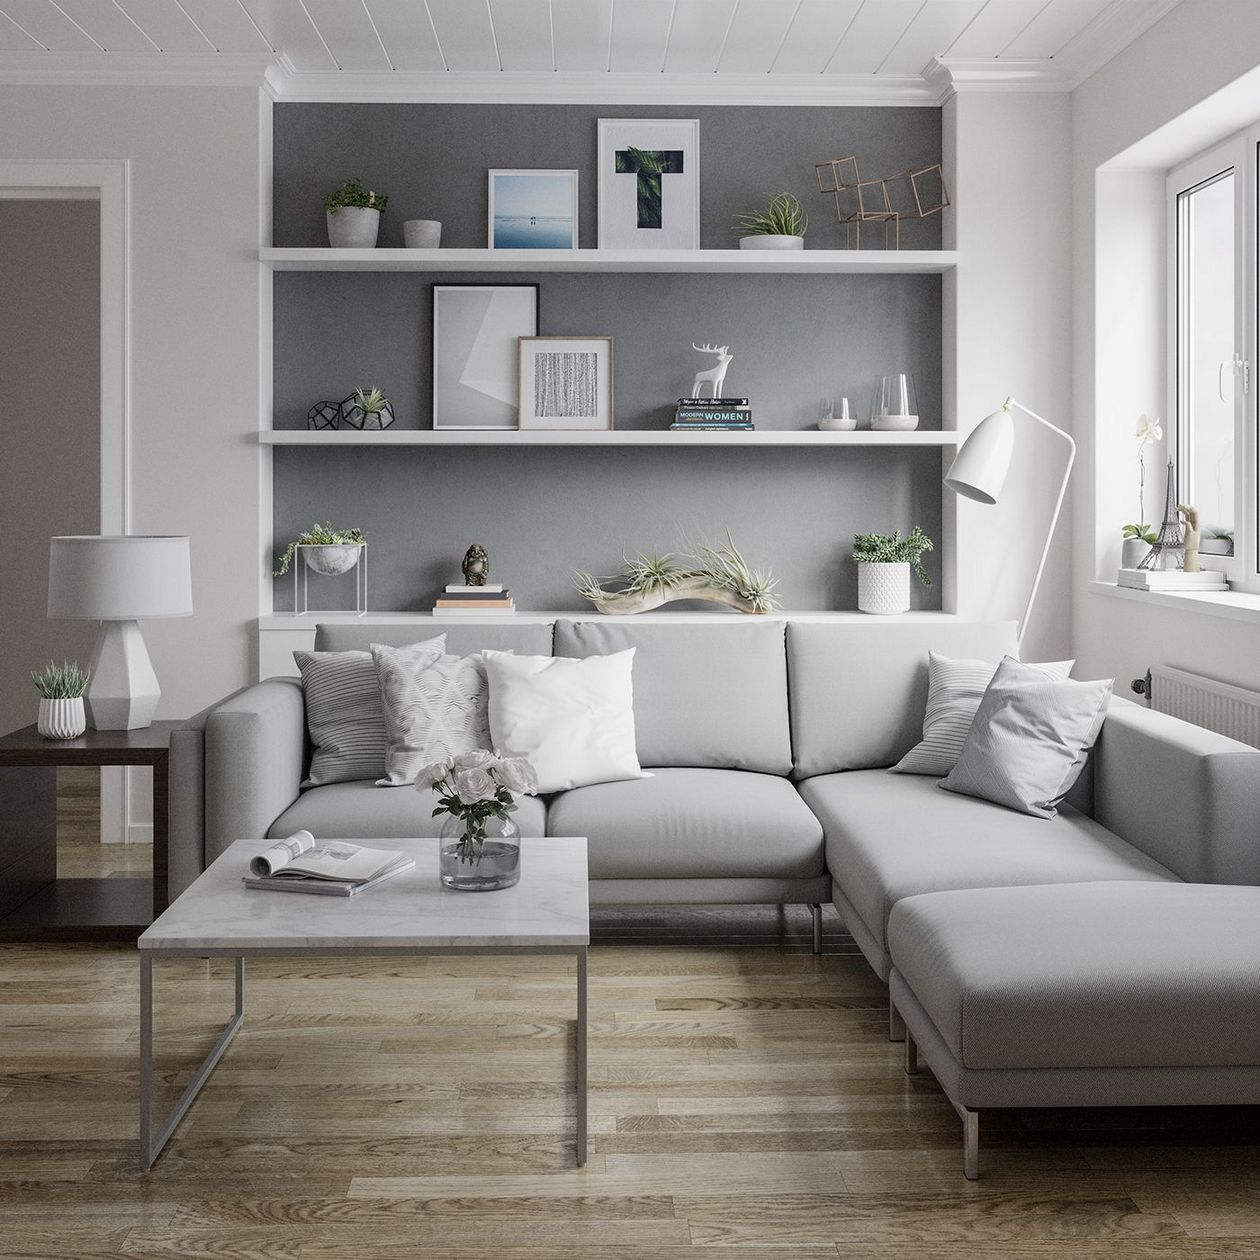 8 Clever Small Living Room Ideas With Scandi Style: 30+ Inspiring Scandinavian Living Room Design Ideas